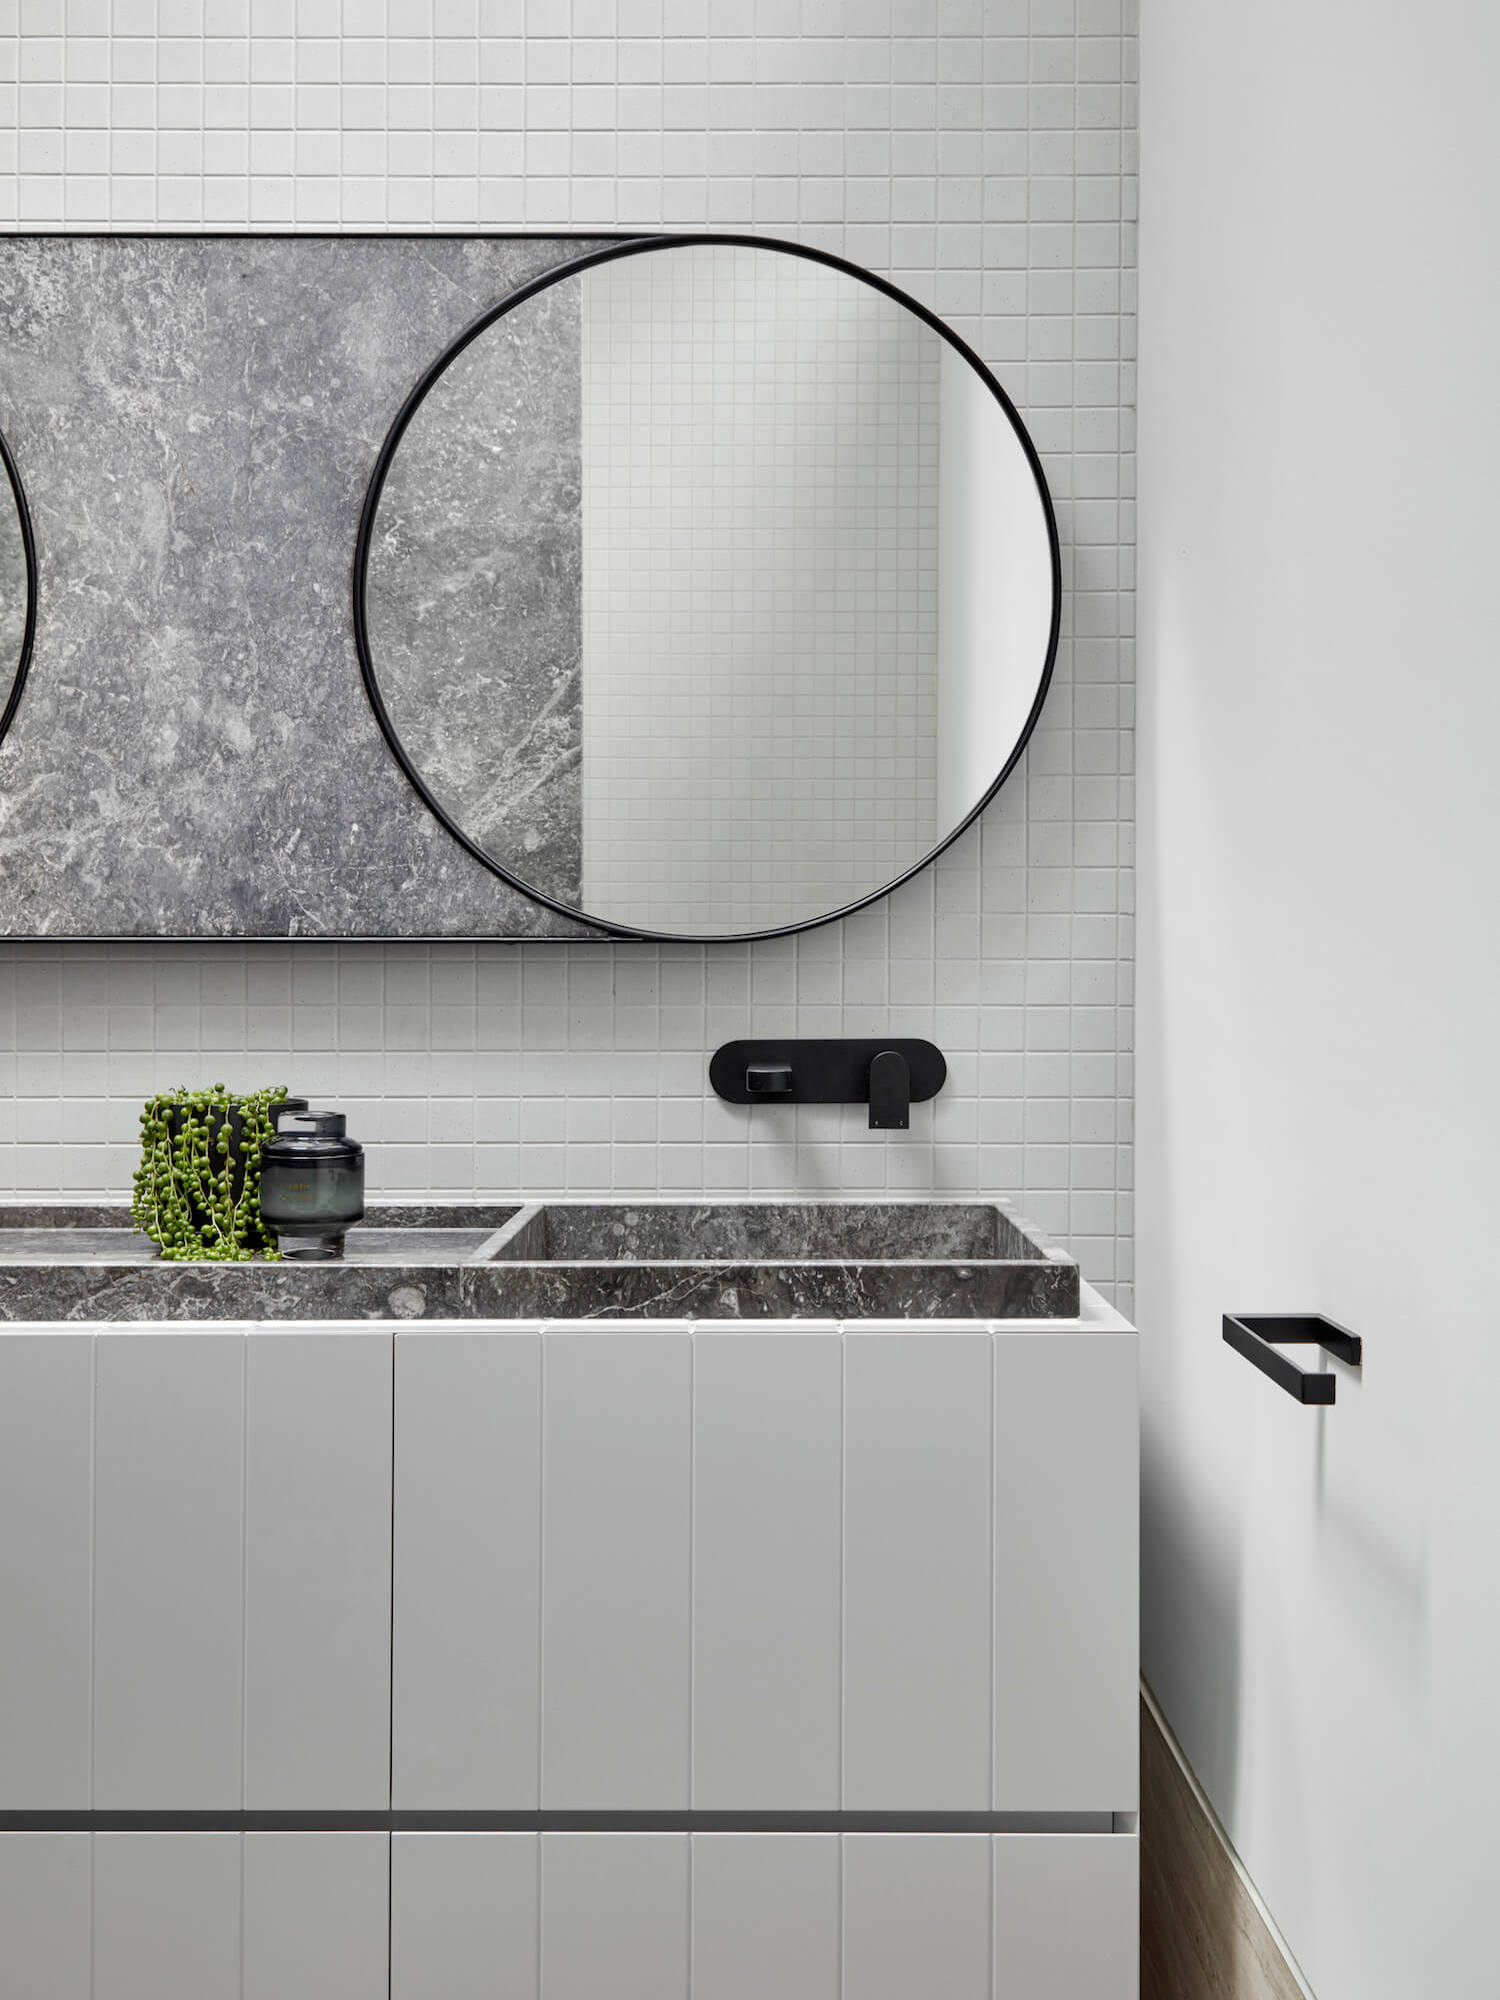 Bringing Sustainability to the Fore in the Bathroom